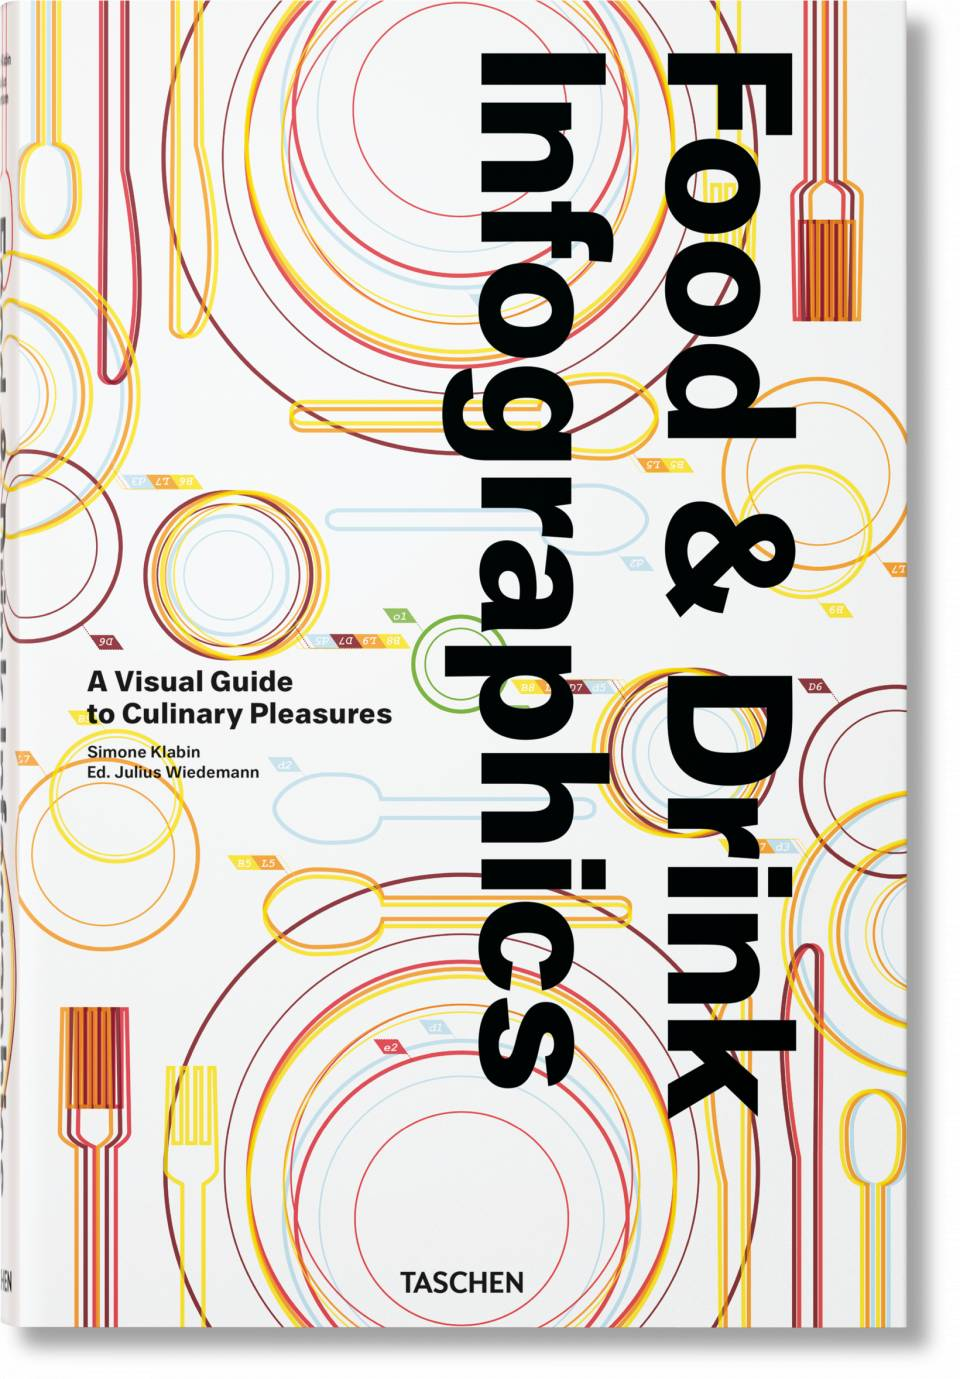 Food & Drink Infographics. A Visual Guide to Culinary Pleasures - image 1